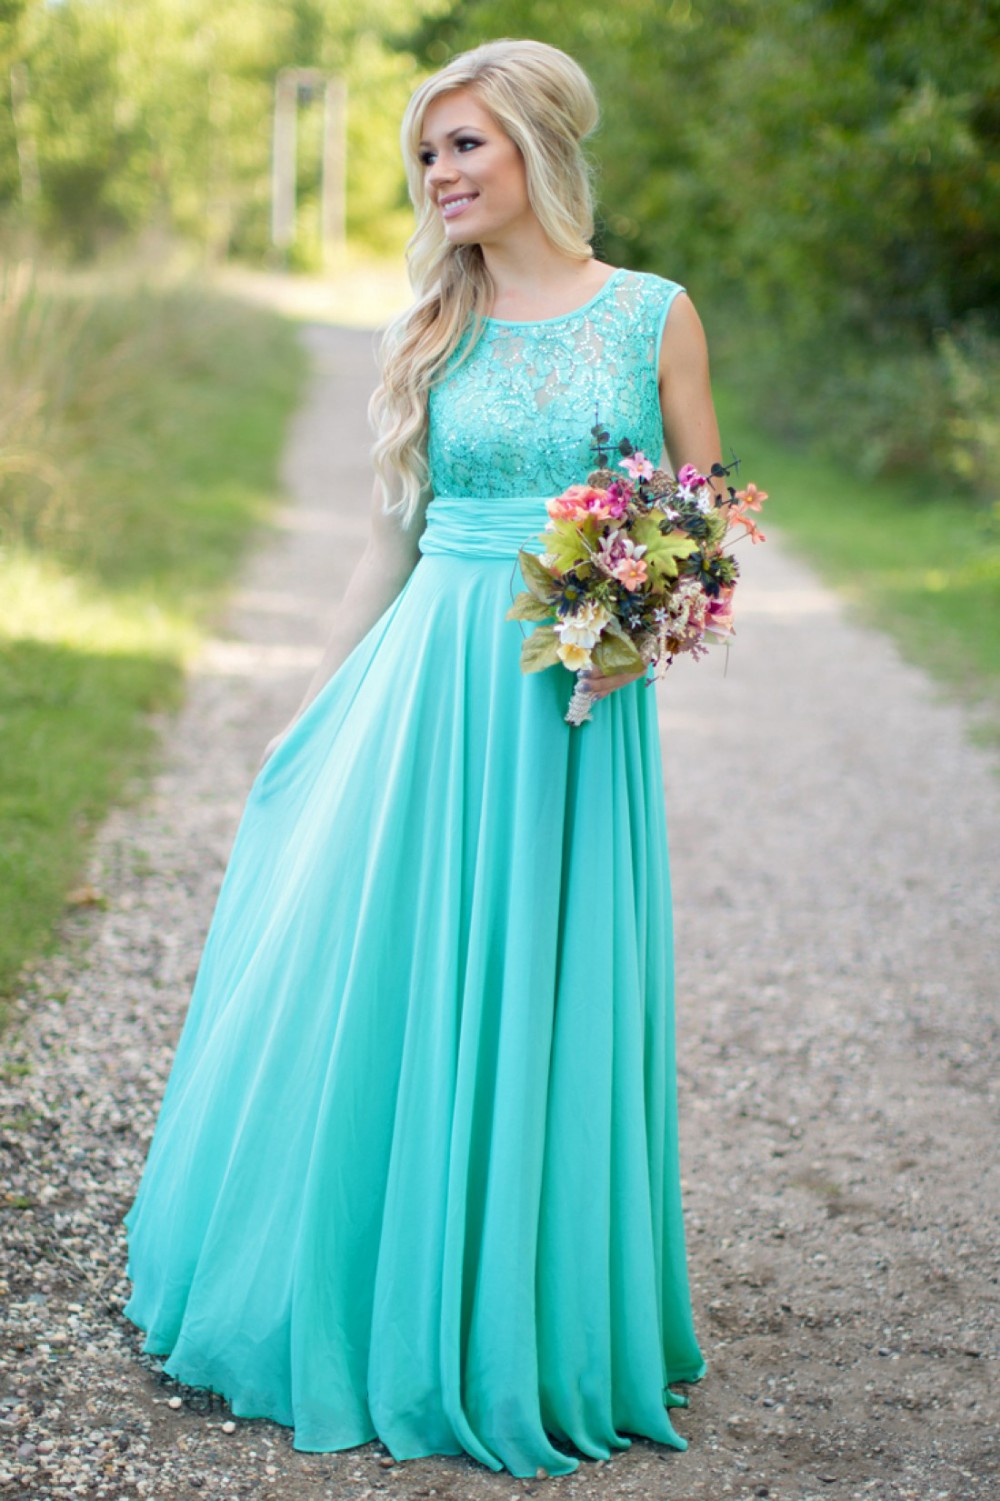 New Fashion Long Bridesmaid Dresses For Wedding Brides Chiffon Mint Green Women Evening Gowns Liques Lace Prom